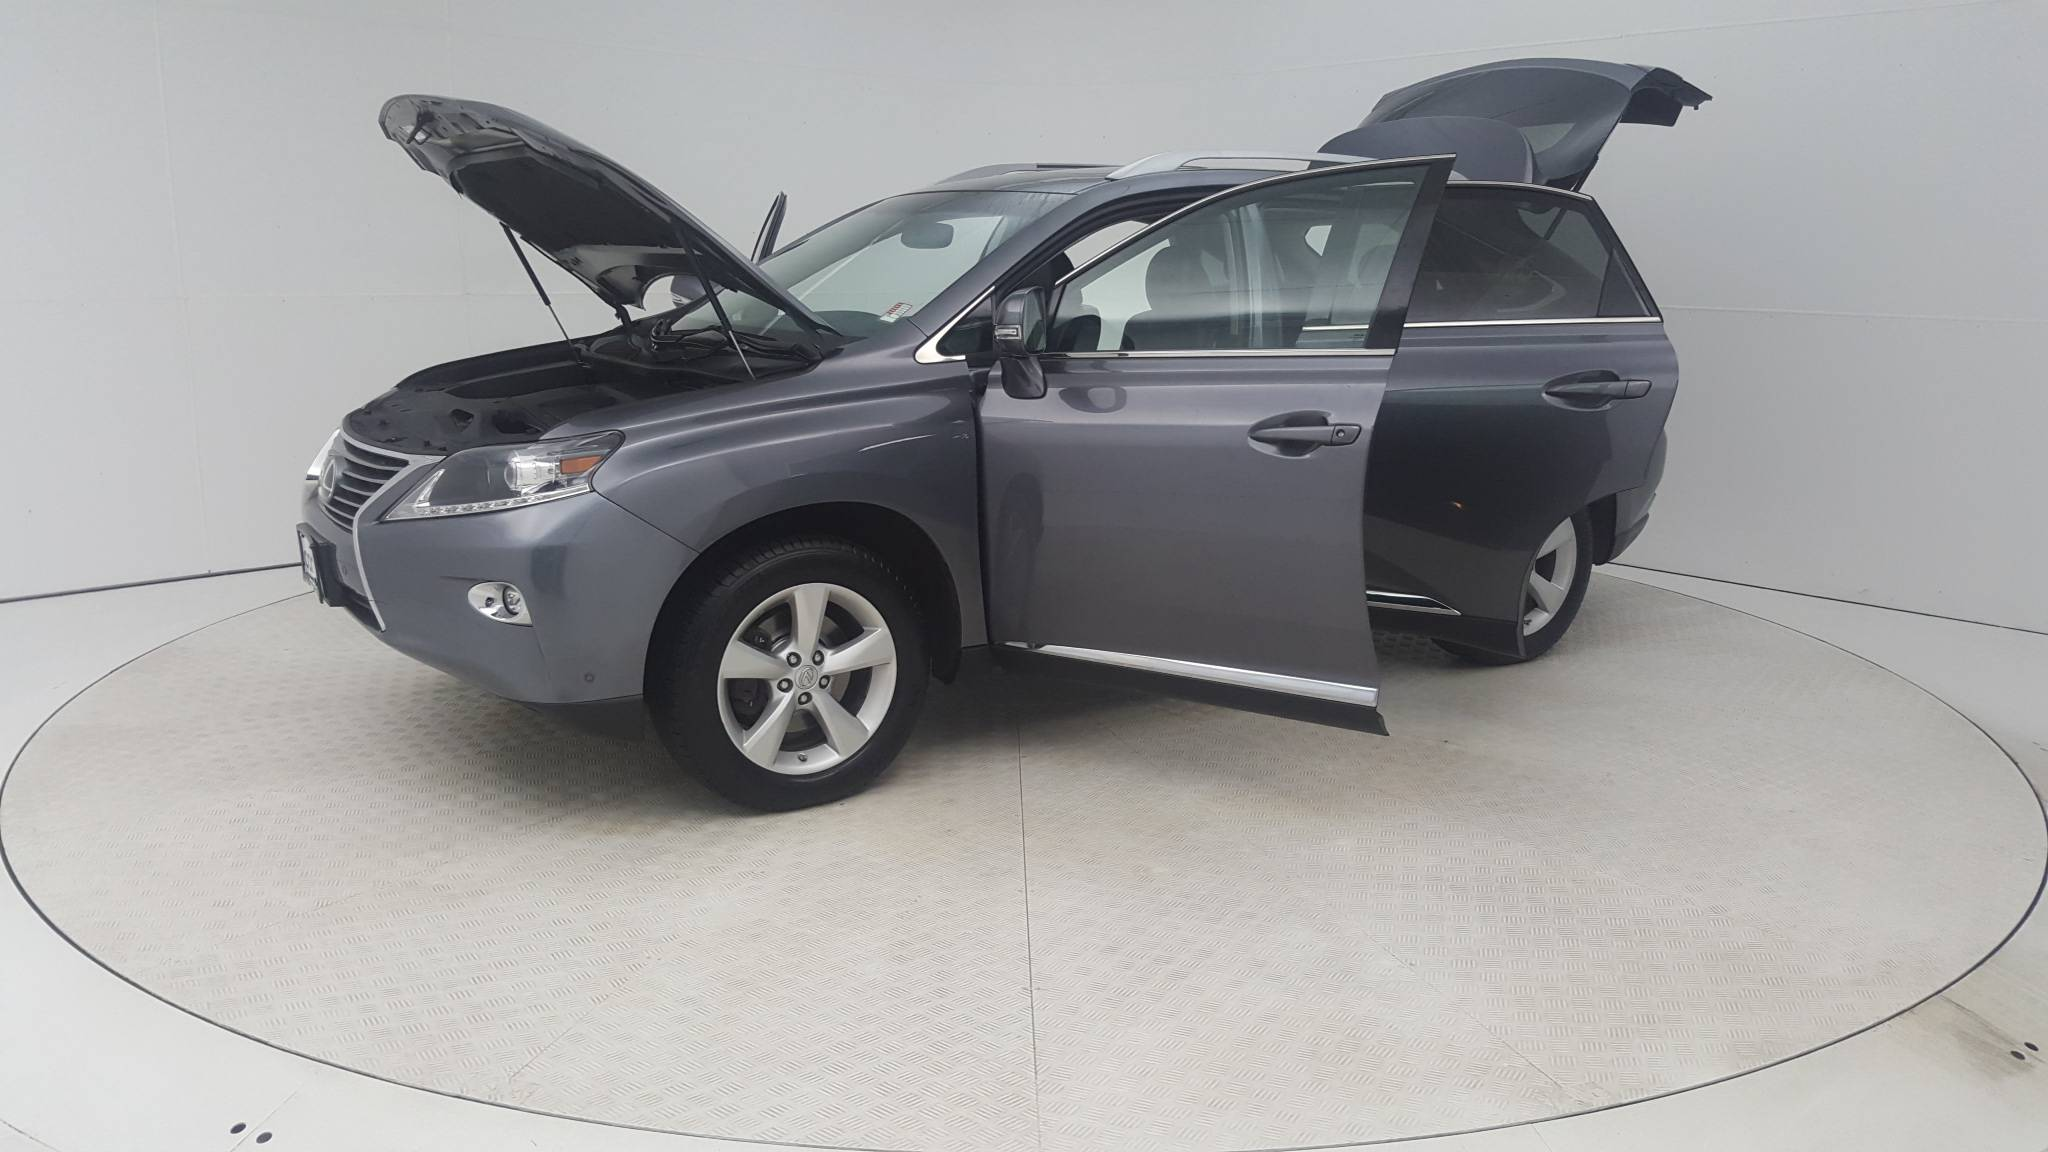 Pre Owned 2015 Lexus RX 350 AWD 4dr Sport Utility in Baltimore